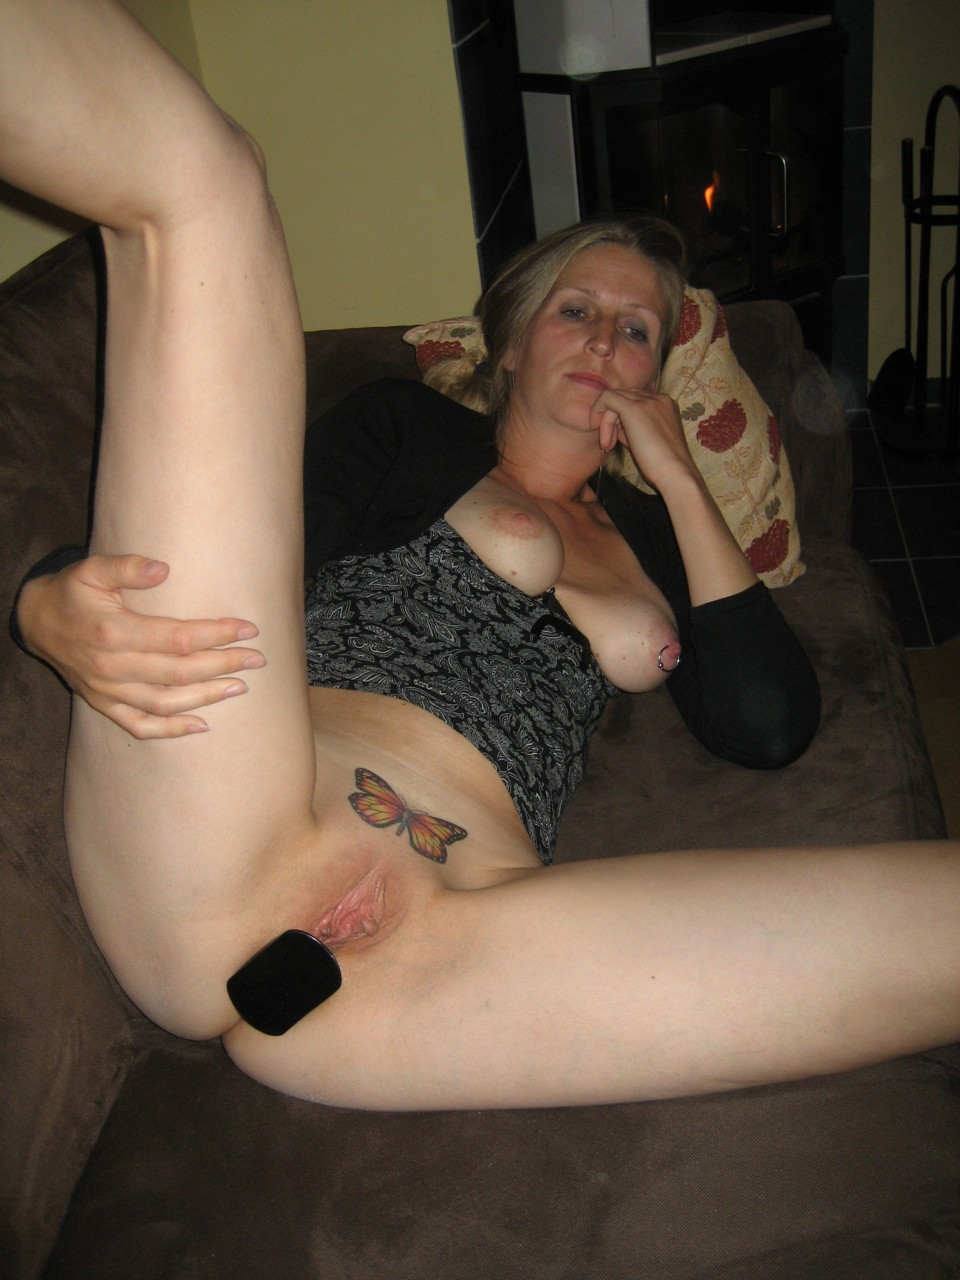 Shaved pussy with landing strip